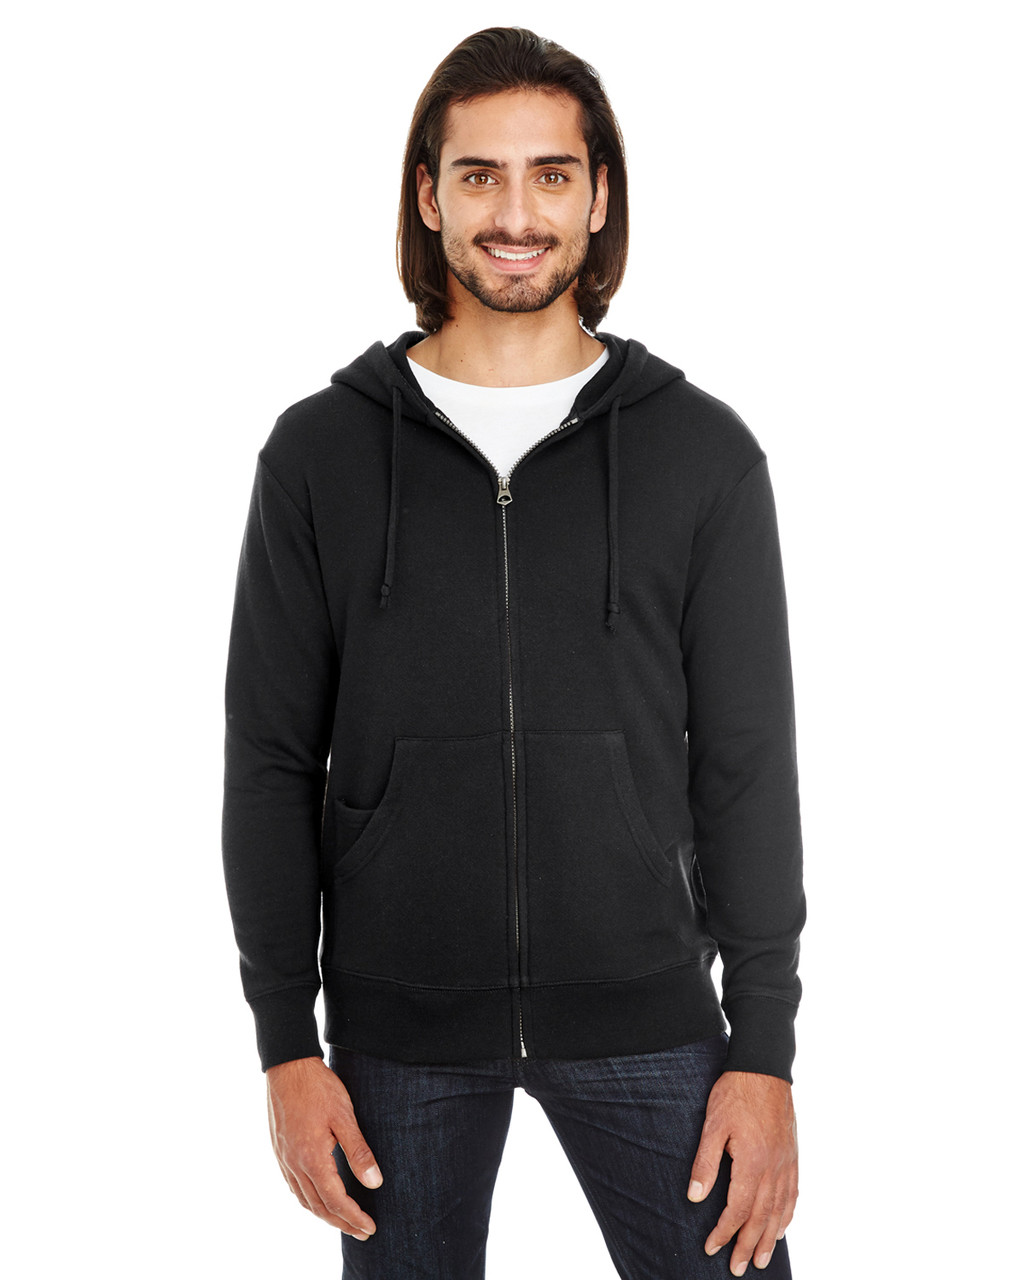 Black Solid - 321Z Threadfast Unisex Triblend French Terry Full-Zip Sweater | Blankclothing.ca